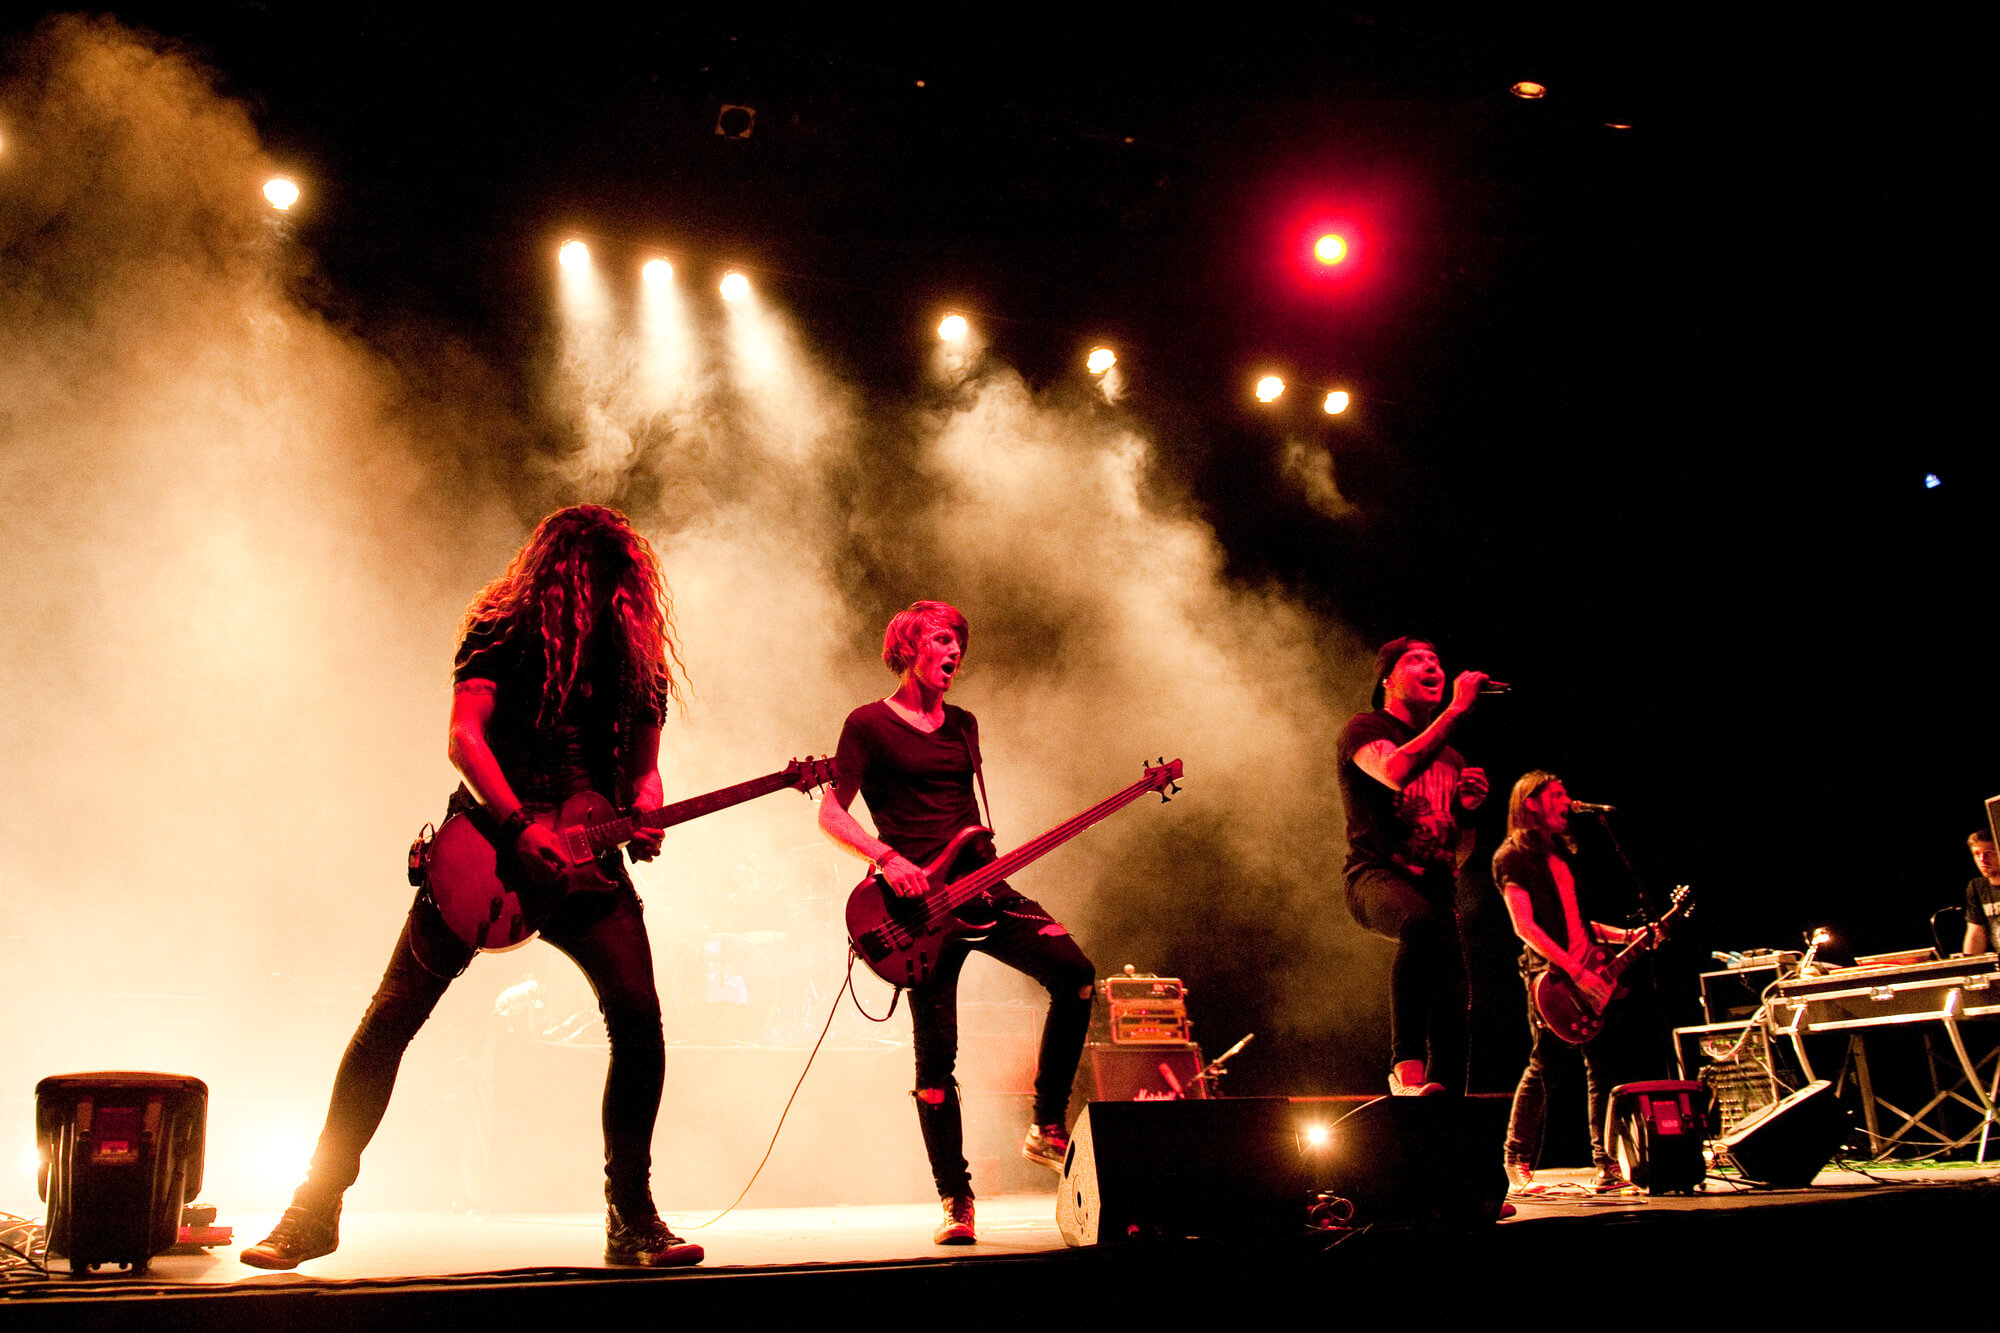 A rock band playing on stage at Derby theatre